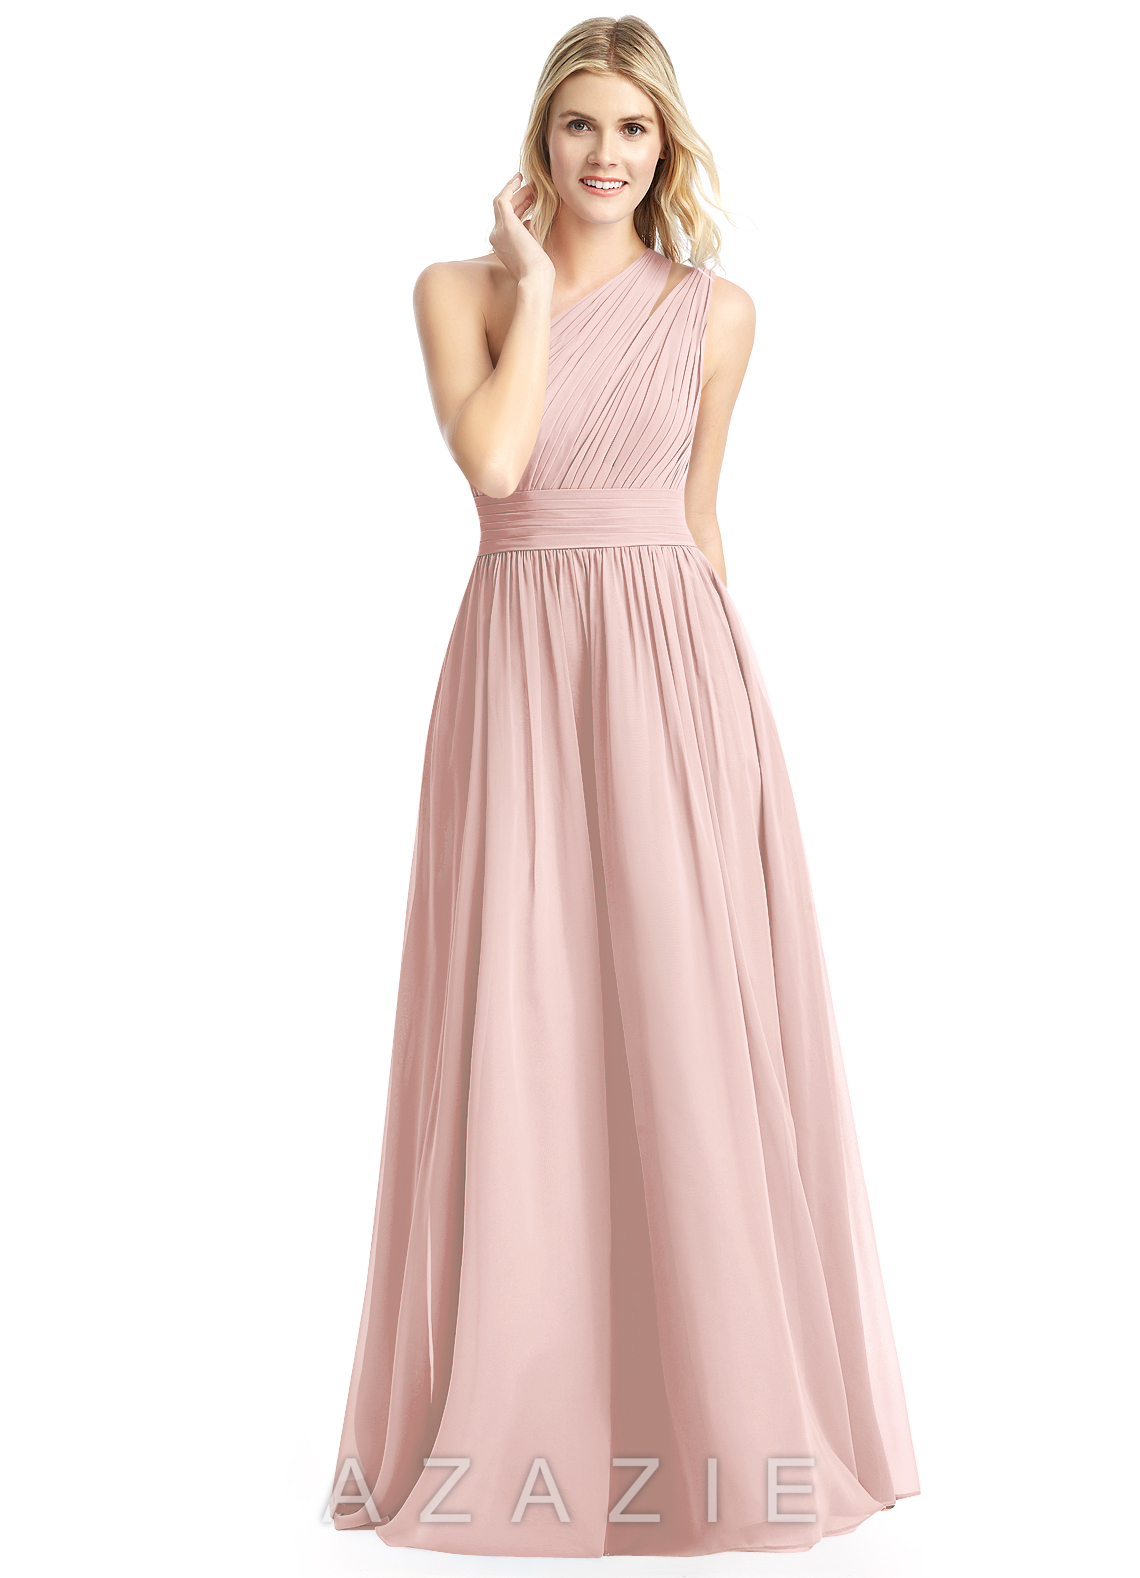 Azazie molly bridesmaid dress azazie color dusty rose ombrellifo Image collections